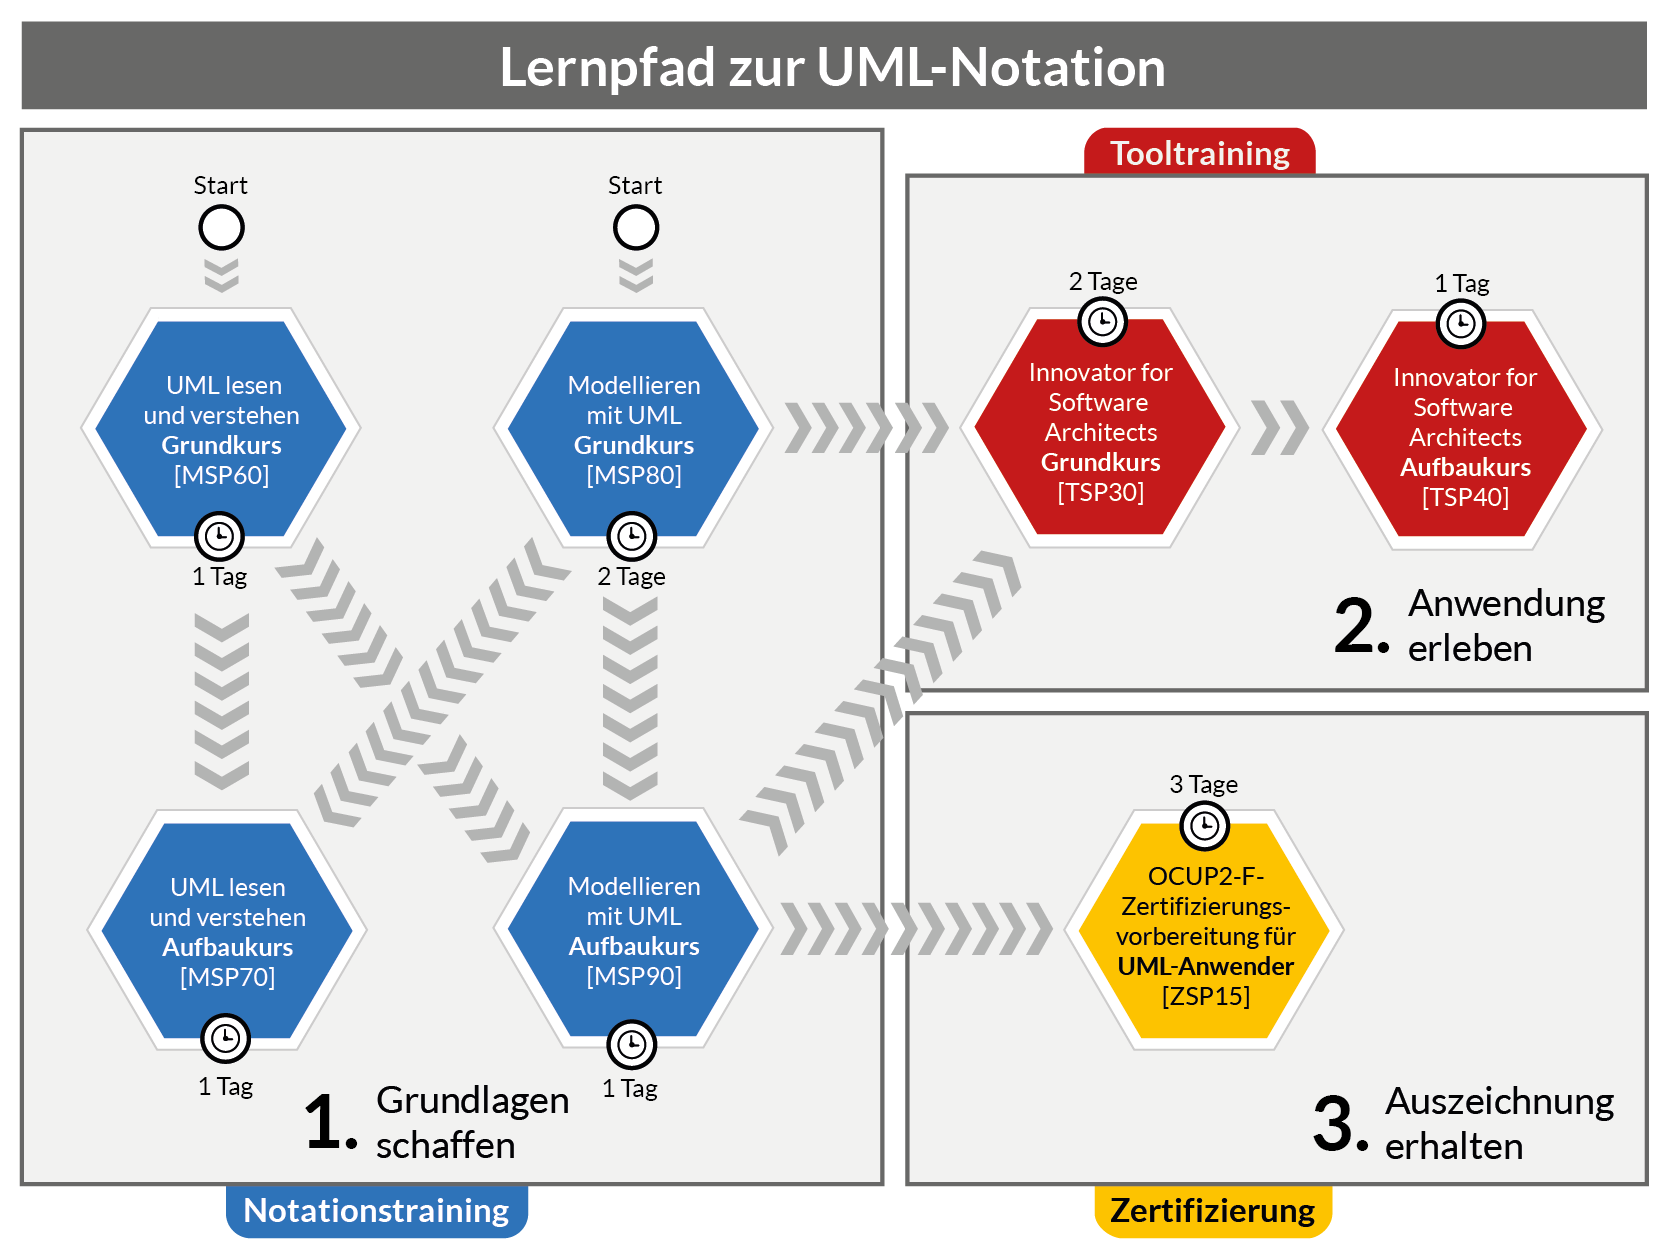 UML Notationstrainings